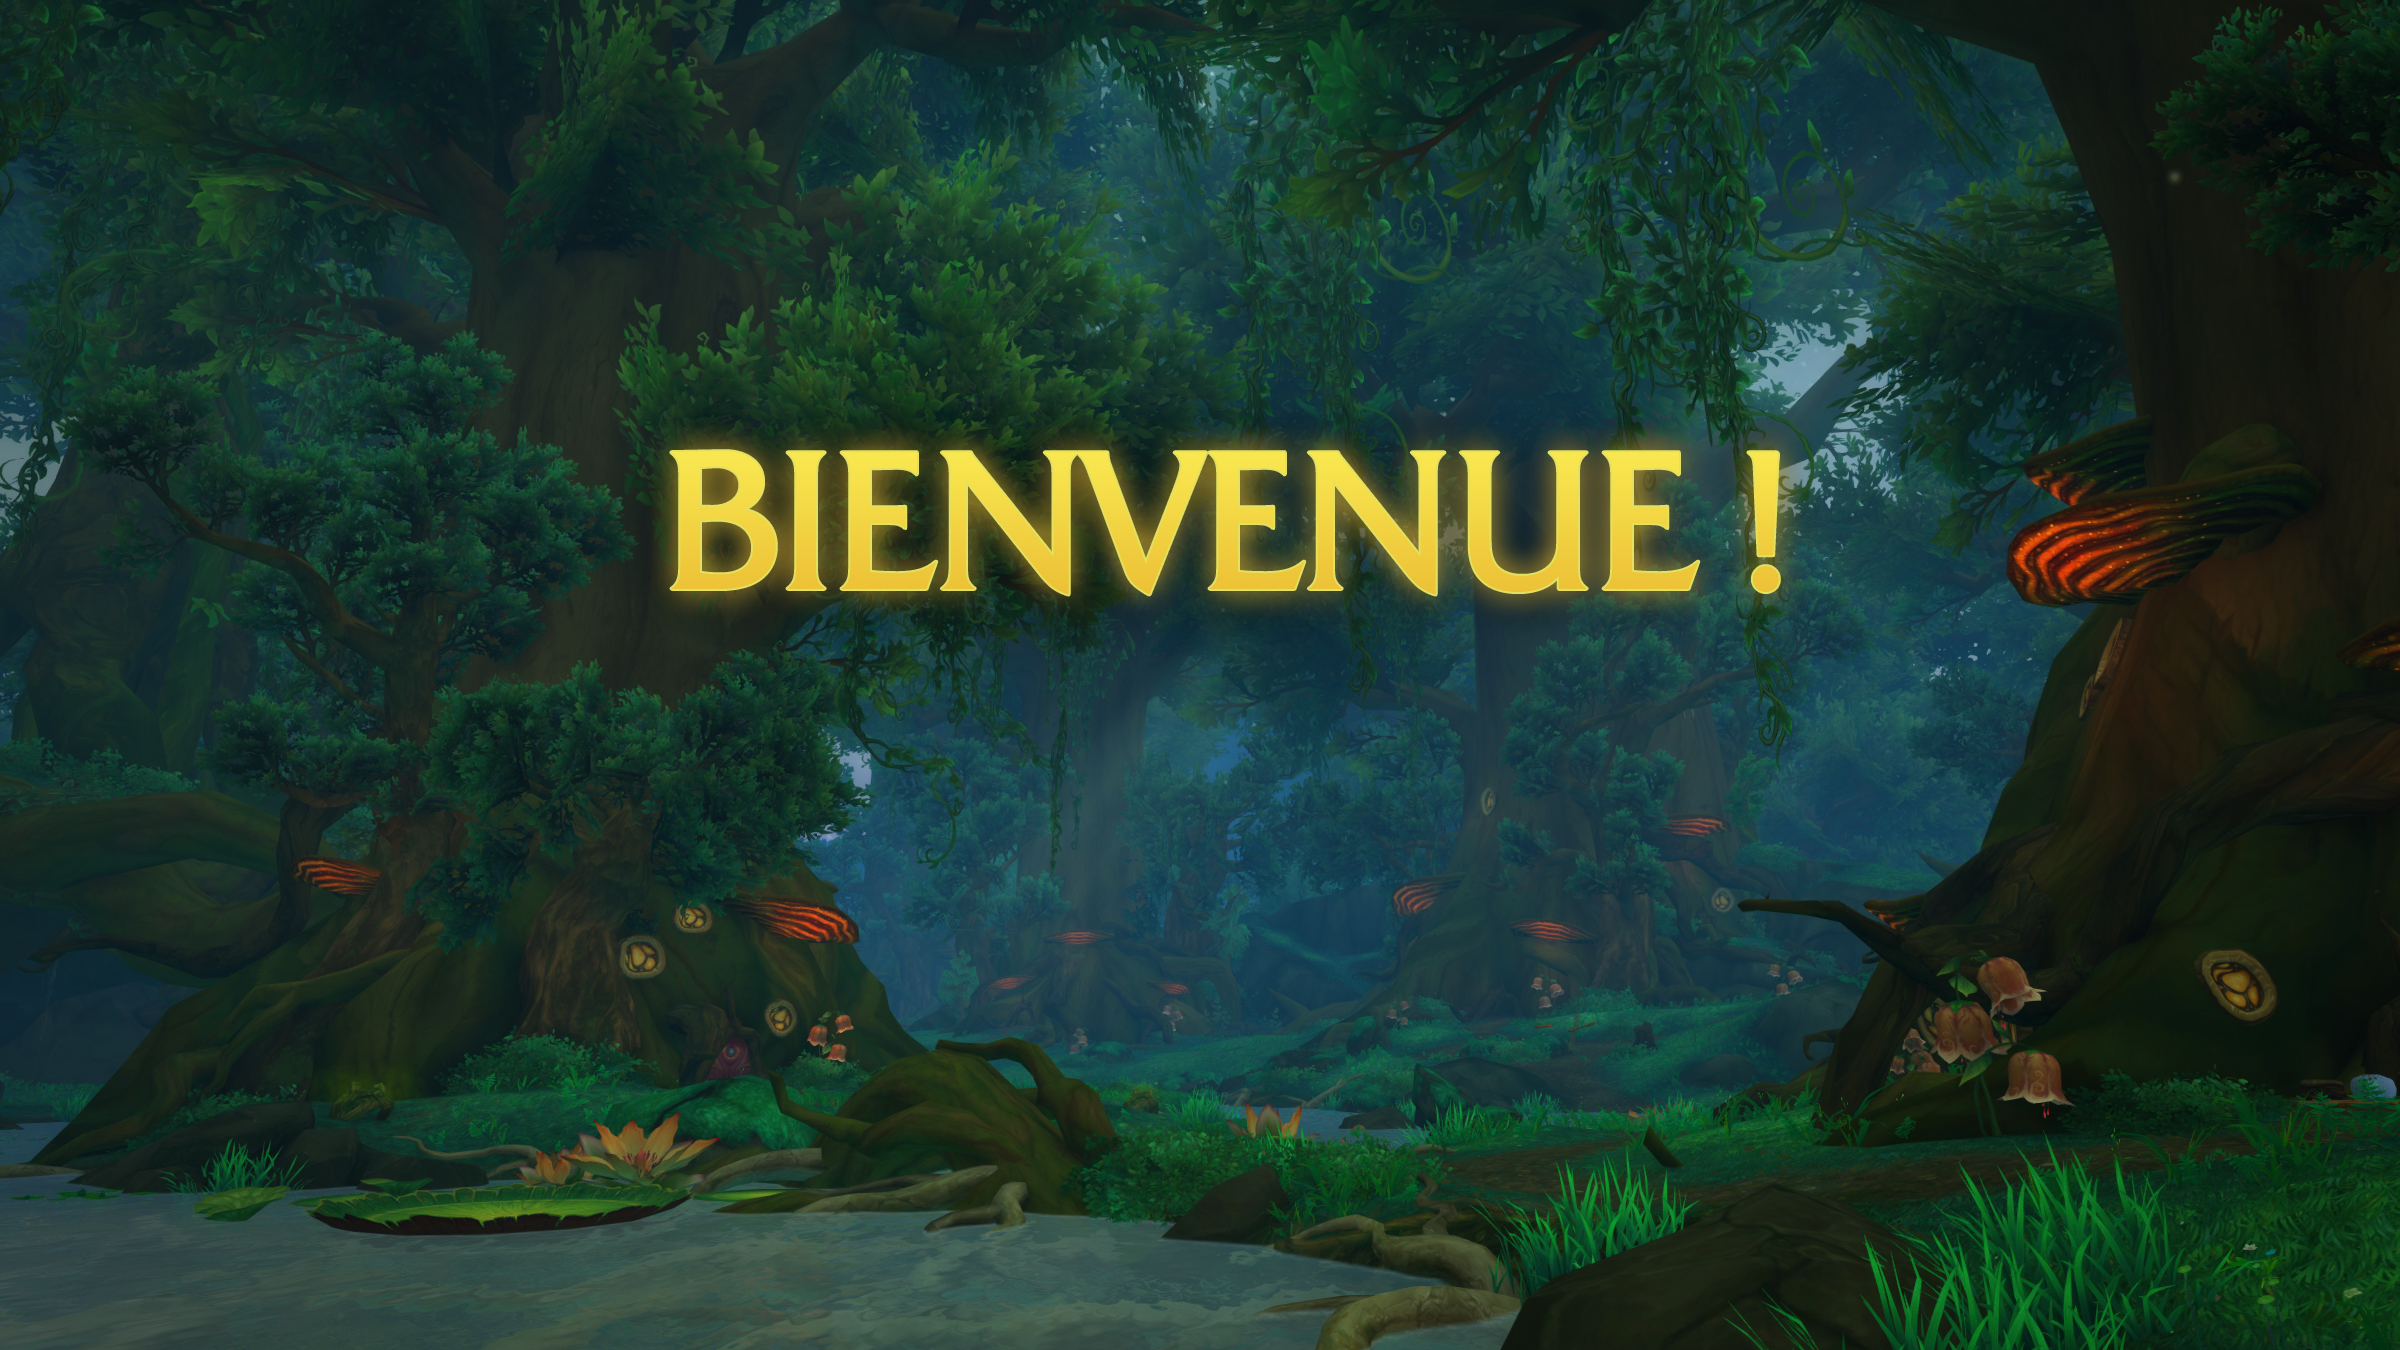 Site de rencontre world of warcraft